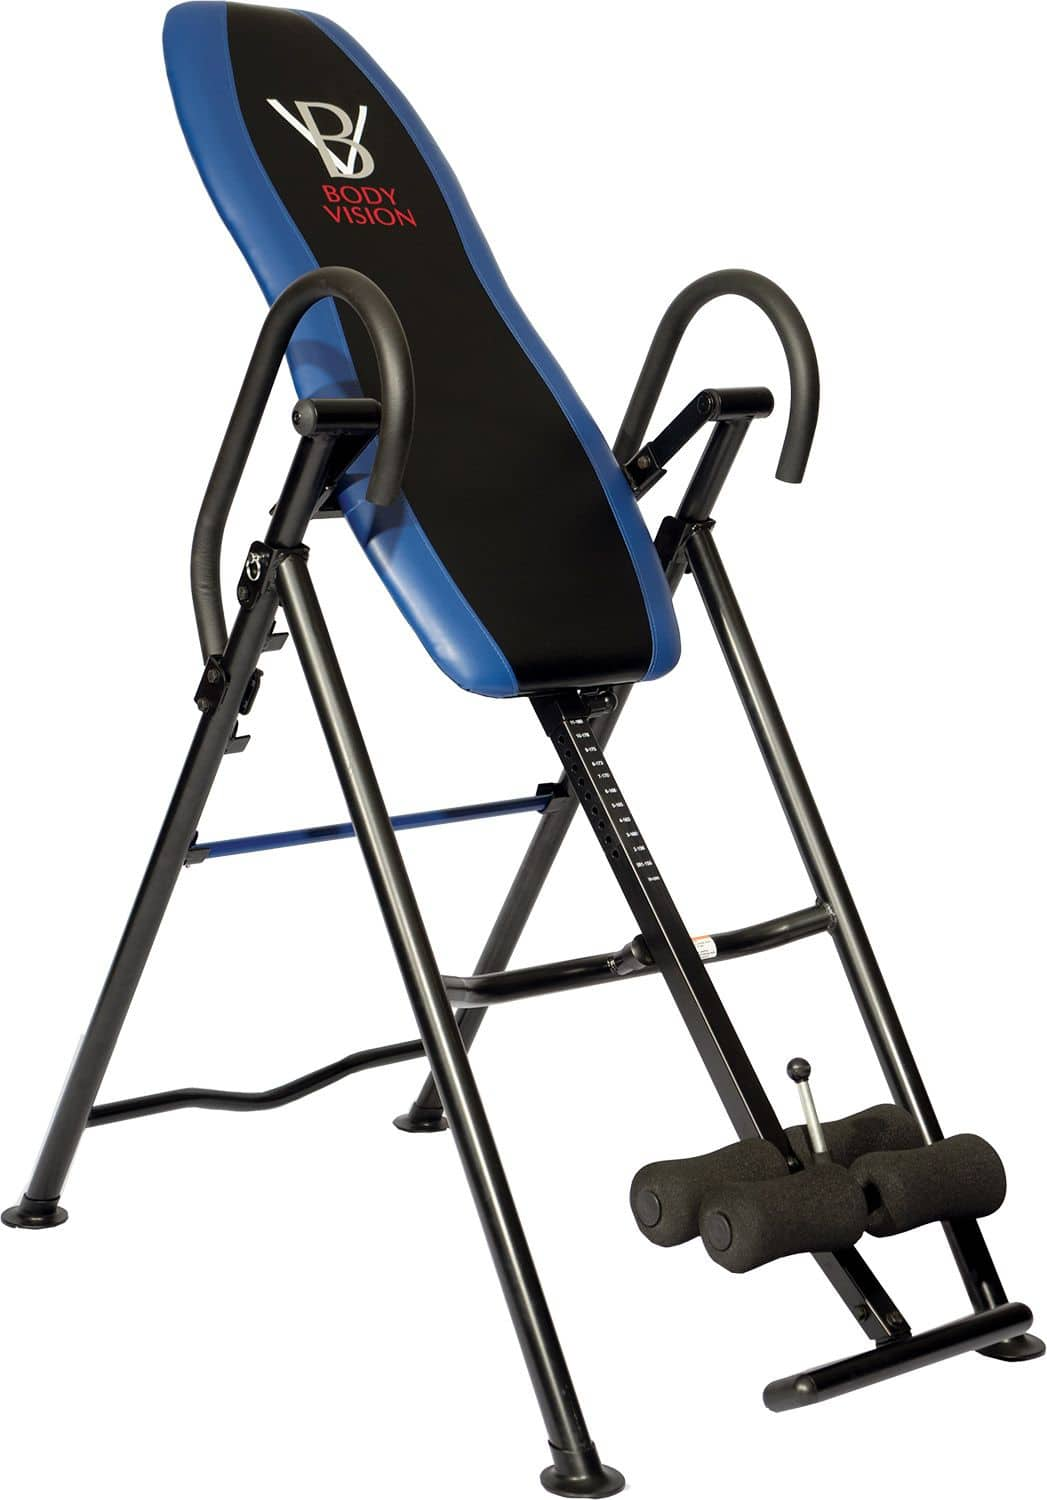 Body Vision IT9400 Inversion Table - $79.99 (free shipping)